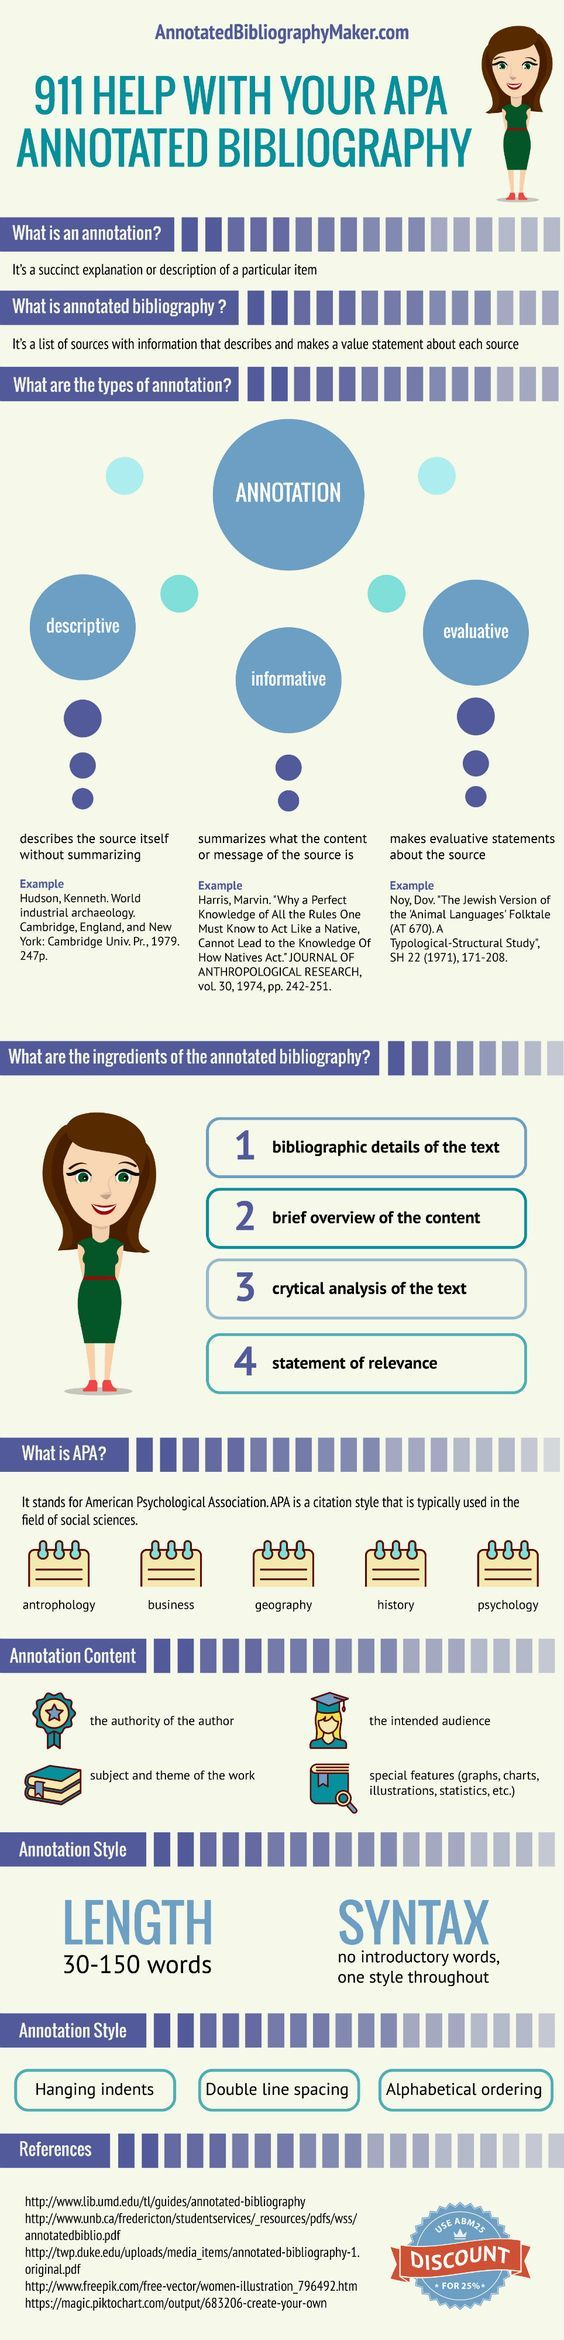 The company annotatedbibliographymaker.com has arranged lots of experience bibliography writers who provide APA Style Annotated Bibliography statement. Do not worry to go anywhere, Please go to the link today here http://www.annotatedbibliographymaker.com/we-can-write-you-annotated-bibliography-in-apa-style/